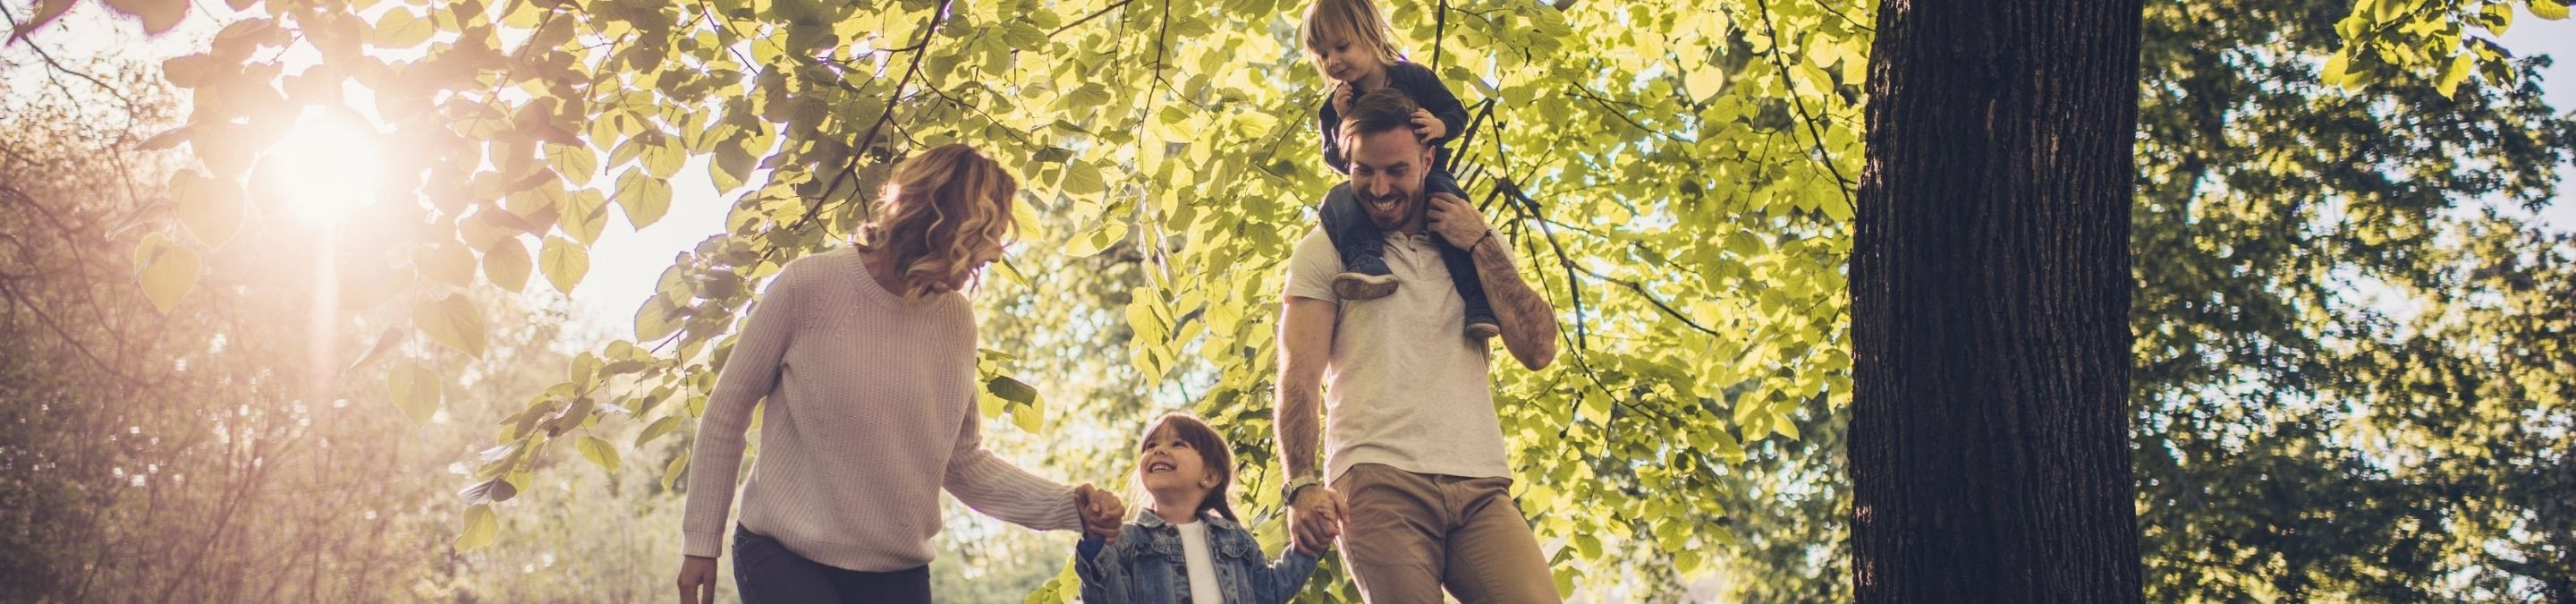 a family walking through the woods and laughing